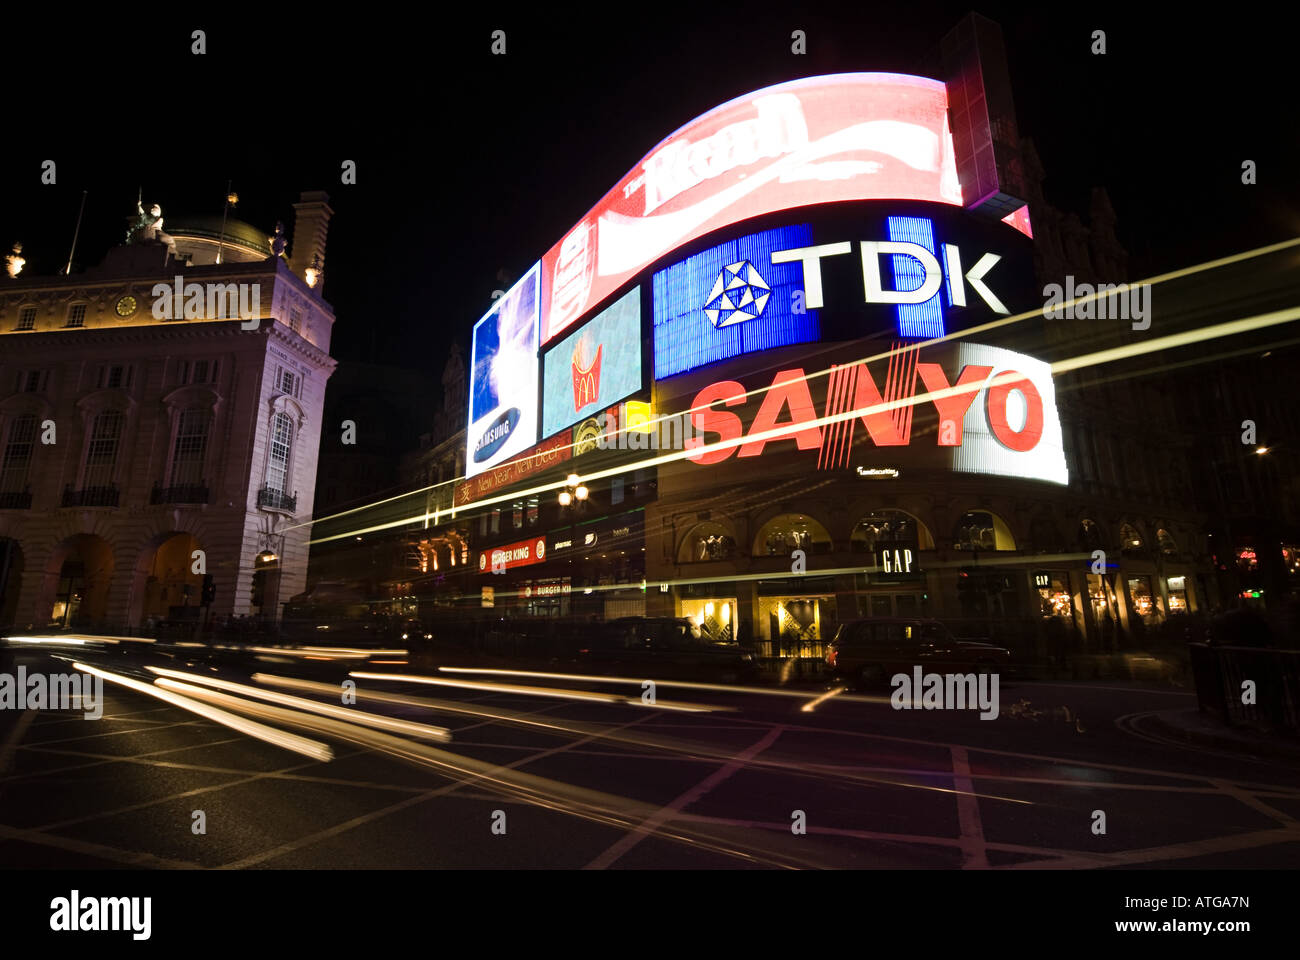 Piccadilly circus london - Stock Image